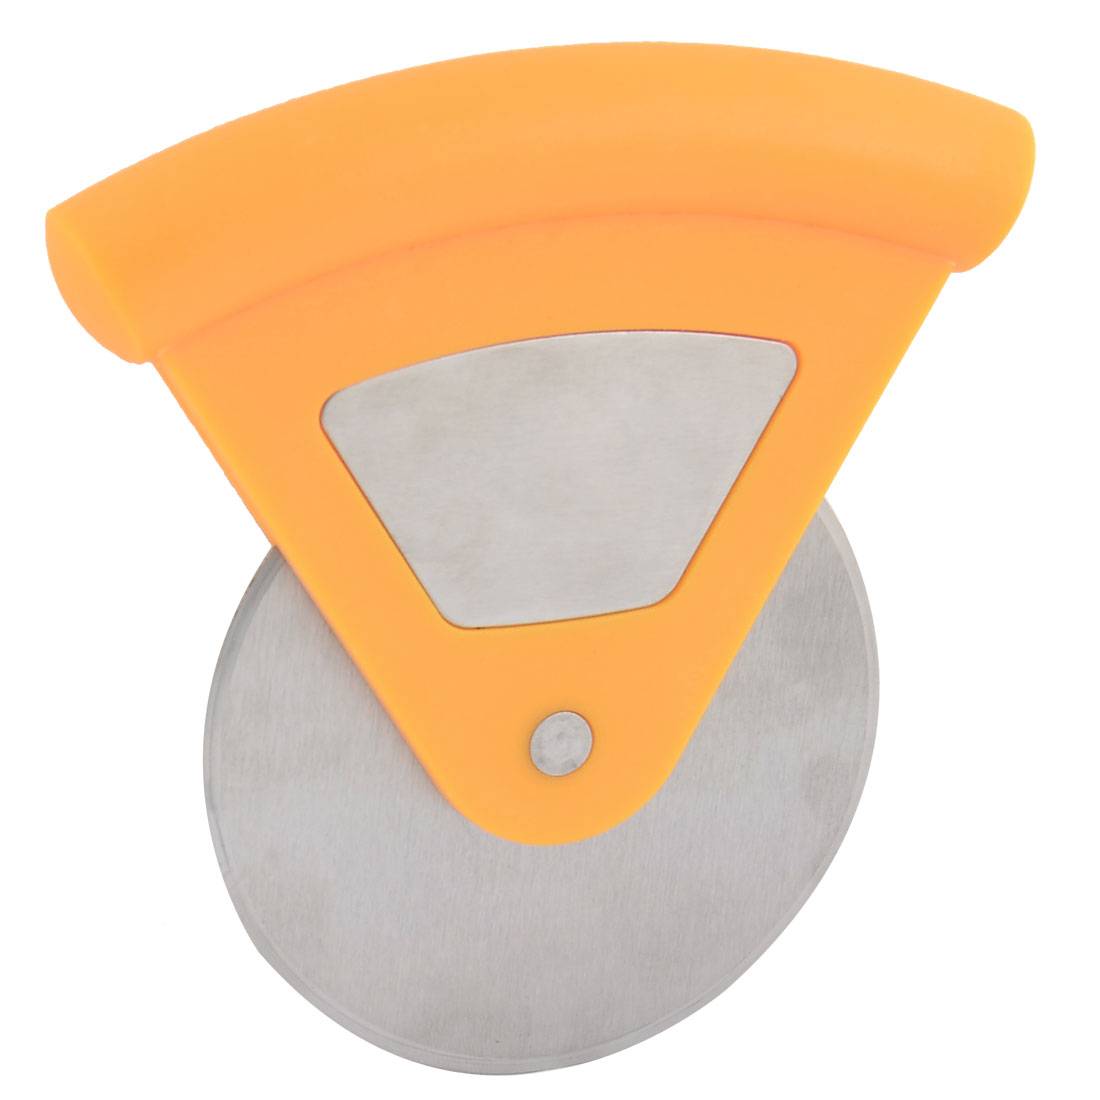 Household Stainless Steel Wheel Pizza Cutter Tool Orange Silver Tone 7.5cm Dia